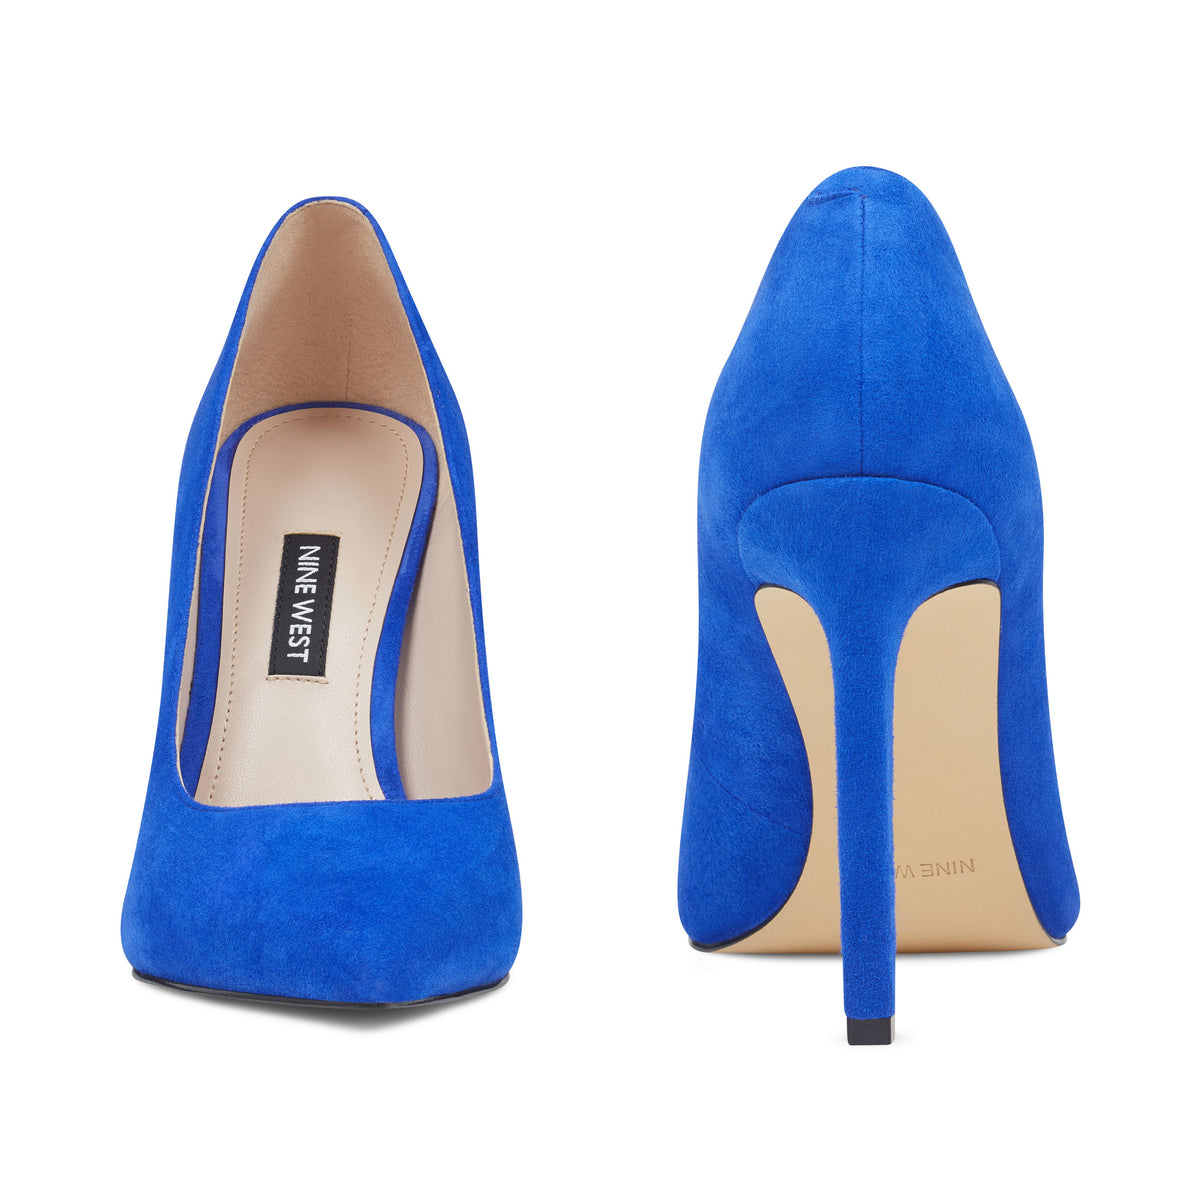 tatiana-pointy-toe-pumps-in-blue-iris-suede